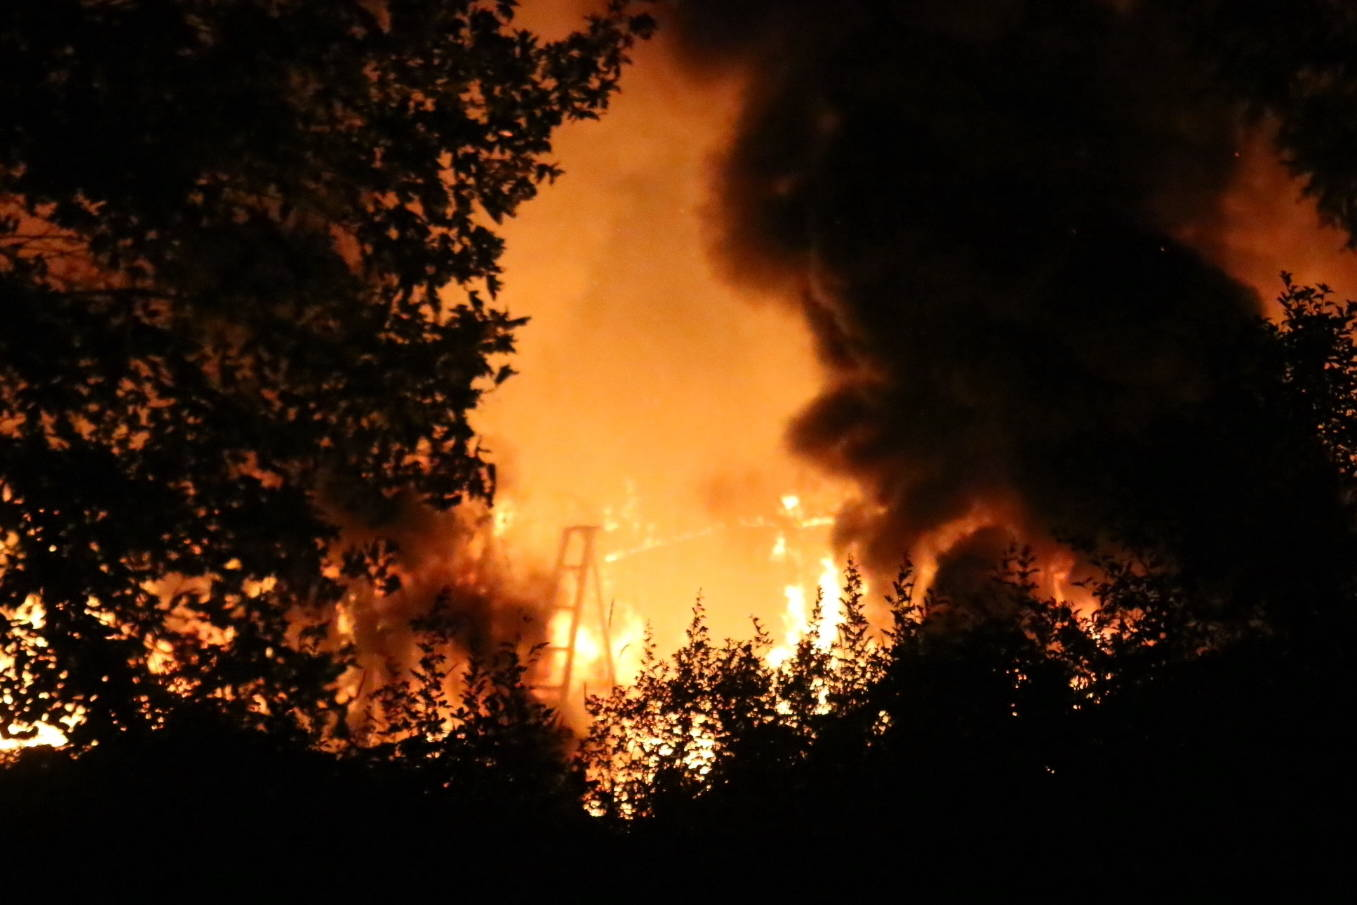 All four North Cowichan fire departments responded to a blaze on Hall Road Tuesday night. (Kevin Rothbauer/Citizen)